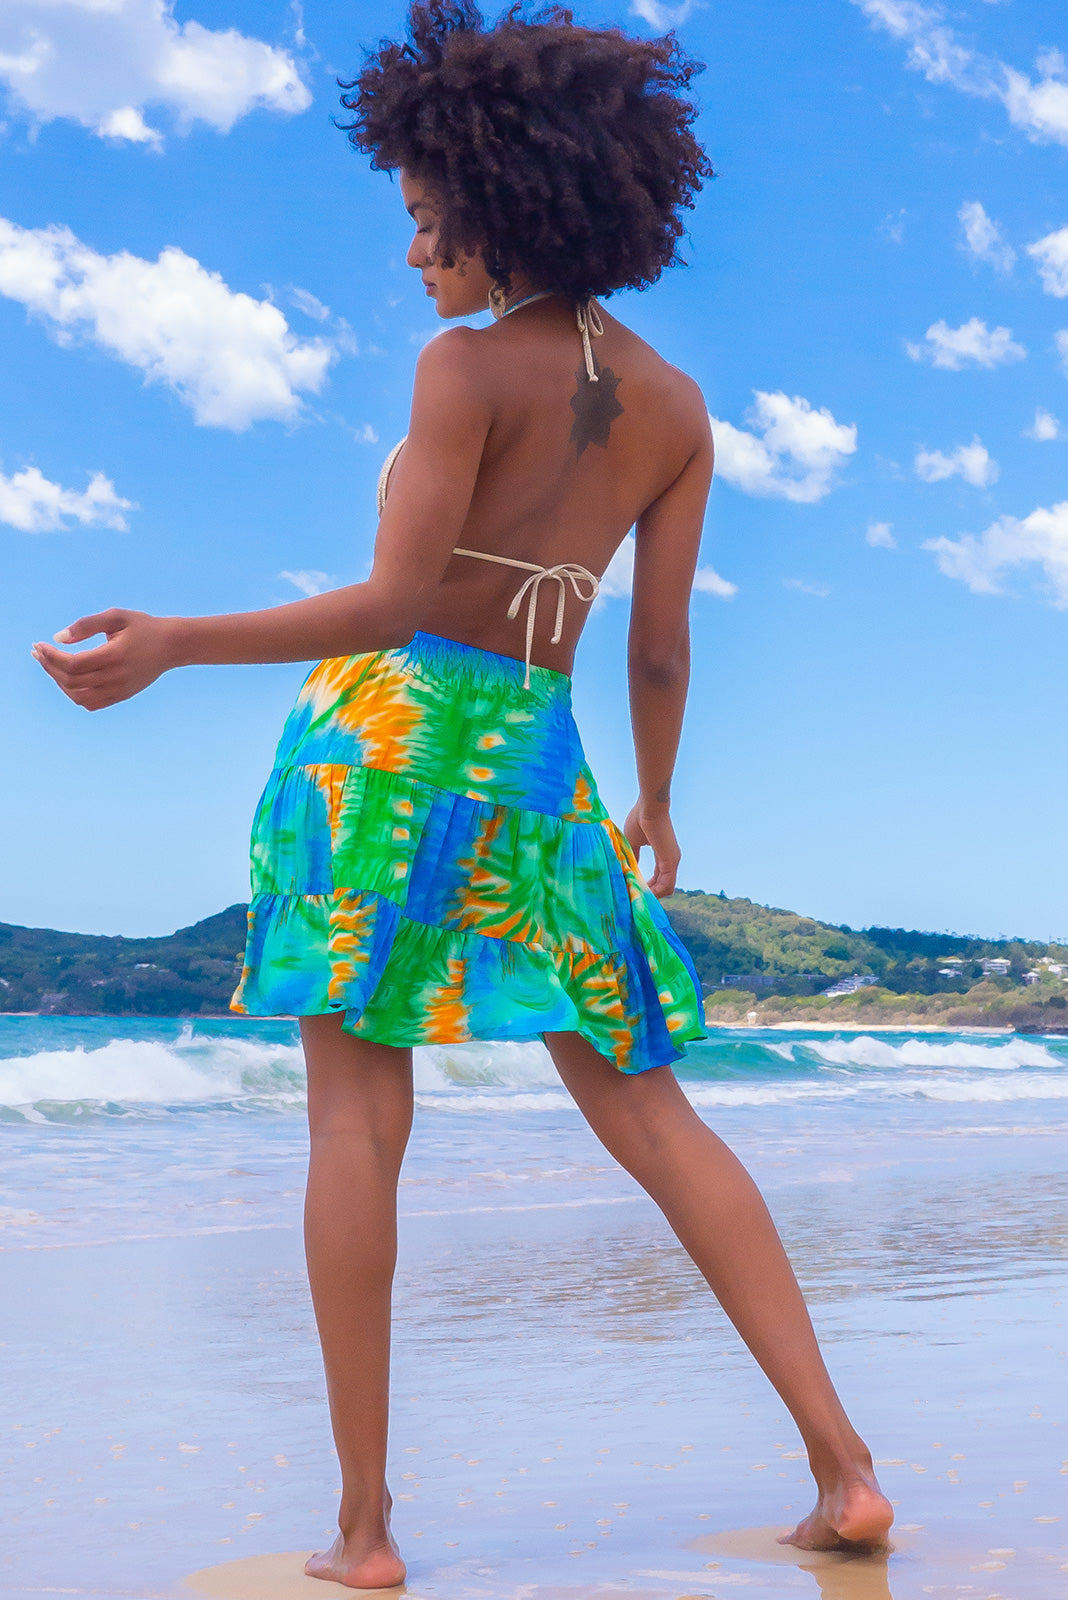 Perfect skirt for beach girls, the Valencia Ocean Tie Dye Mini Skirt features elasticated back waistband, tiered for flirty fullness, side pockets and 100% rayon in tie dye print with sky blue, sea green and sunshine yellow.